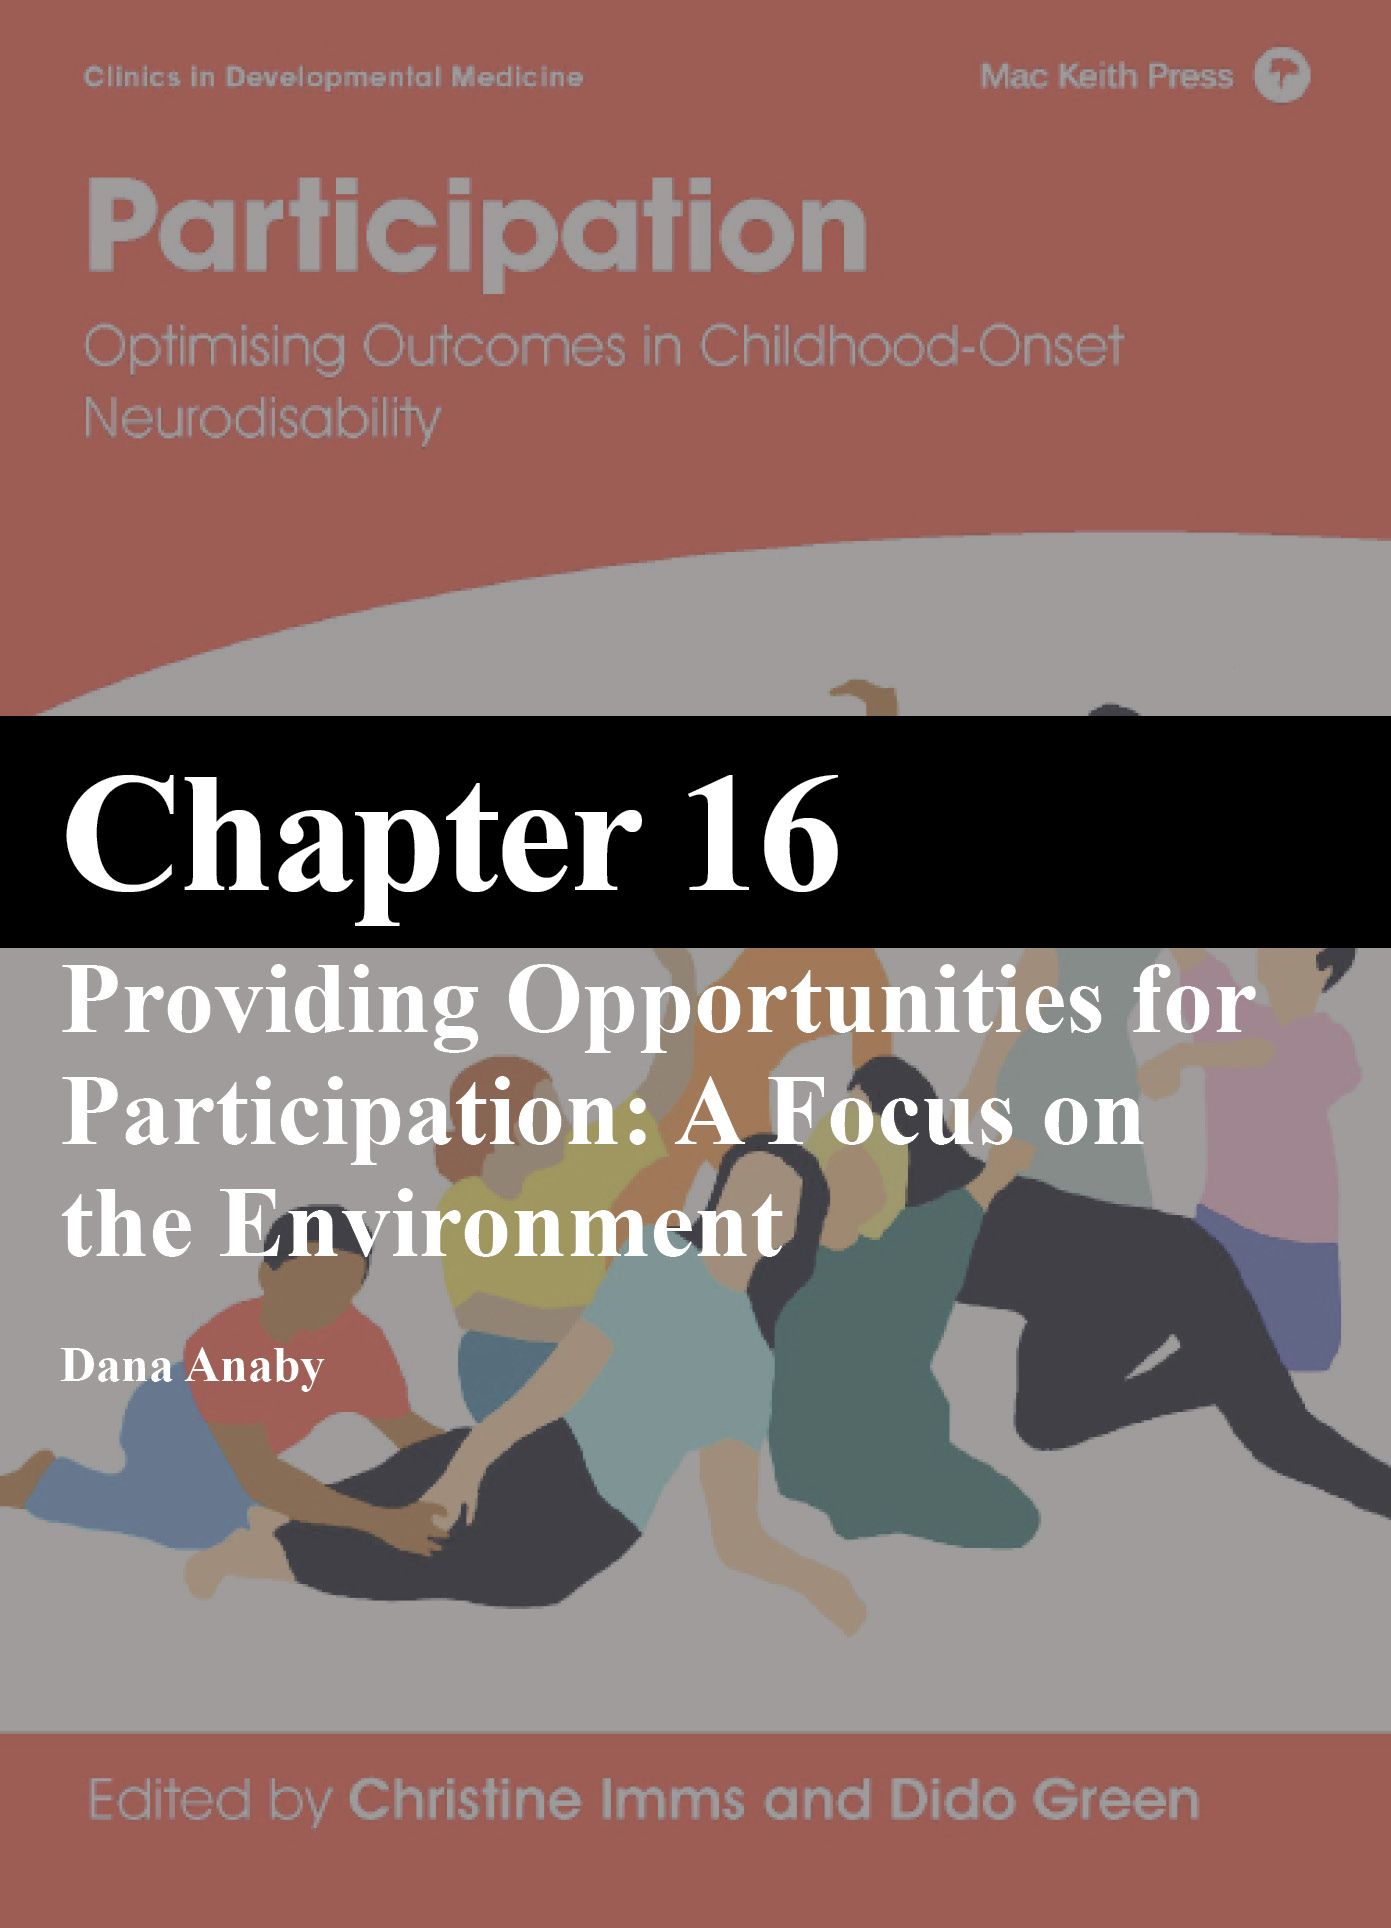 Participation Chapter 16 Imms Green